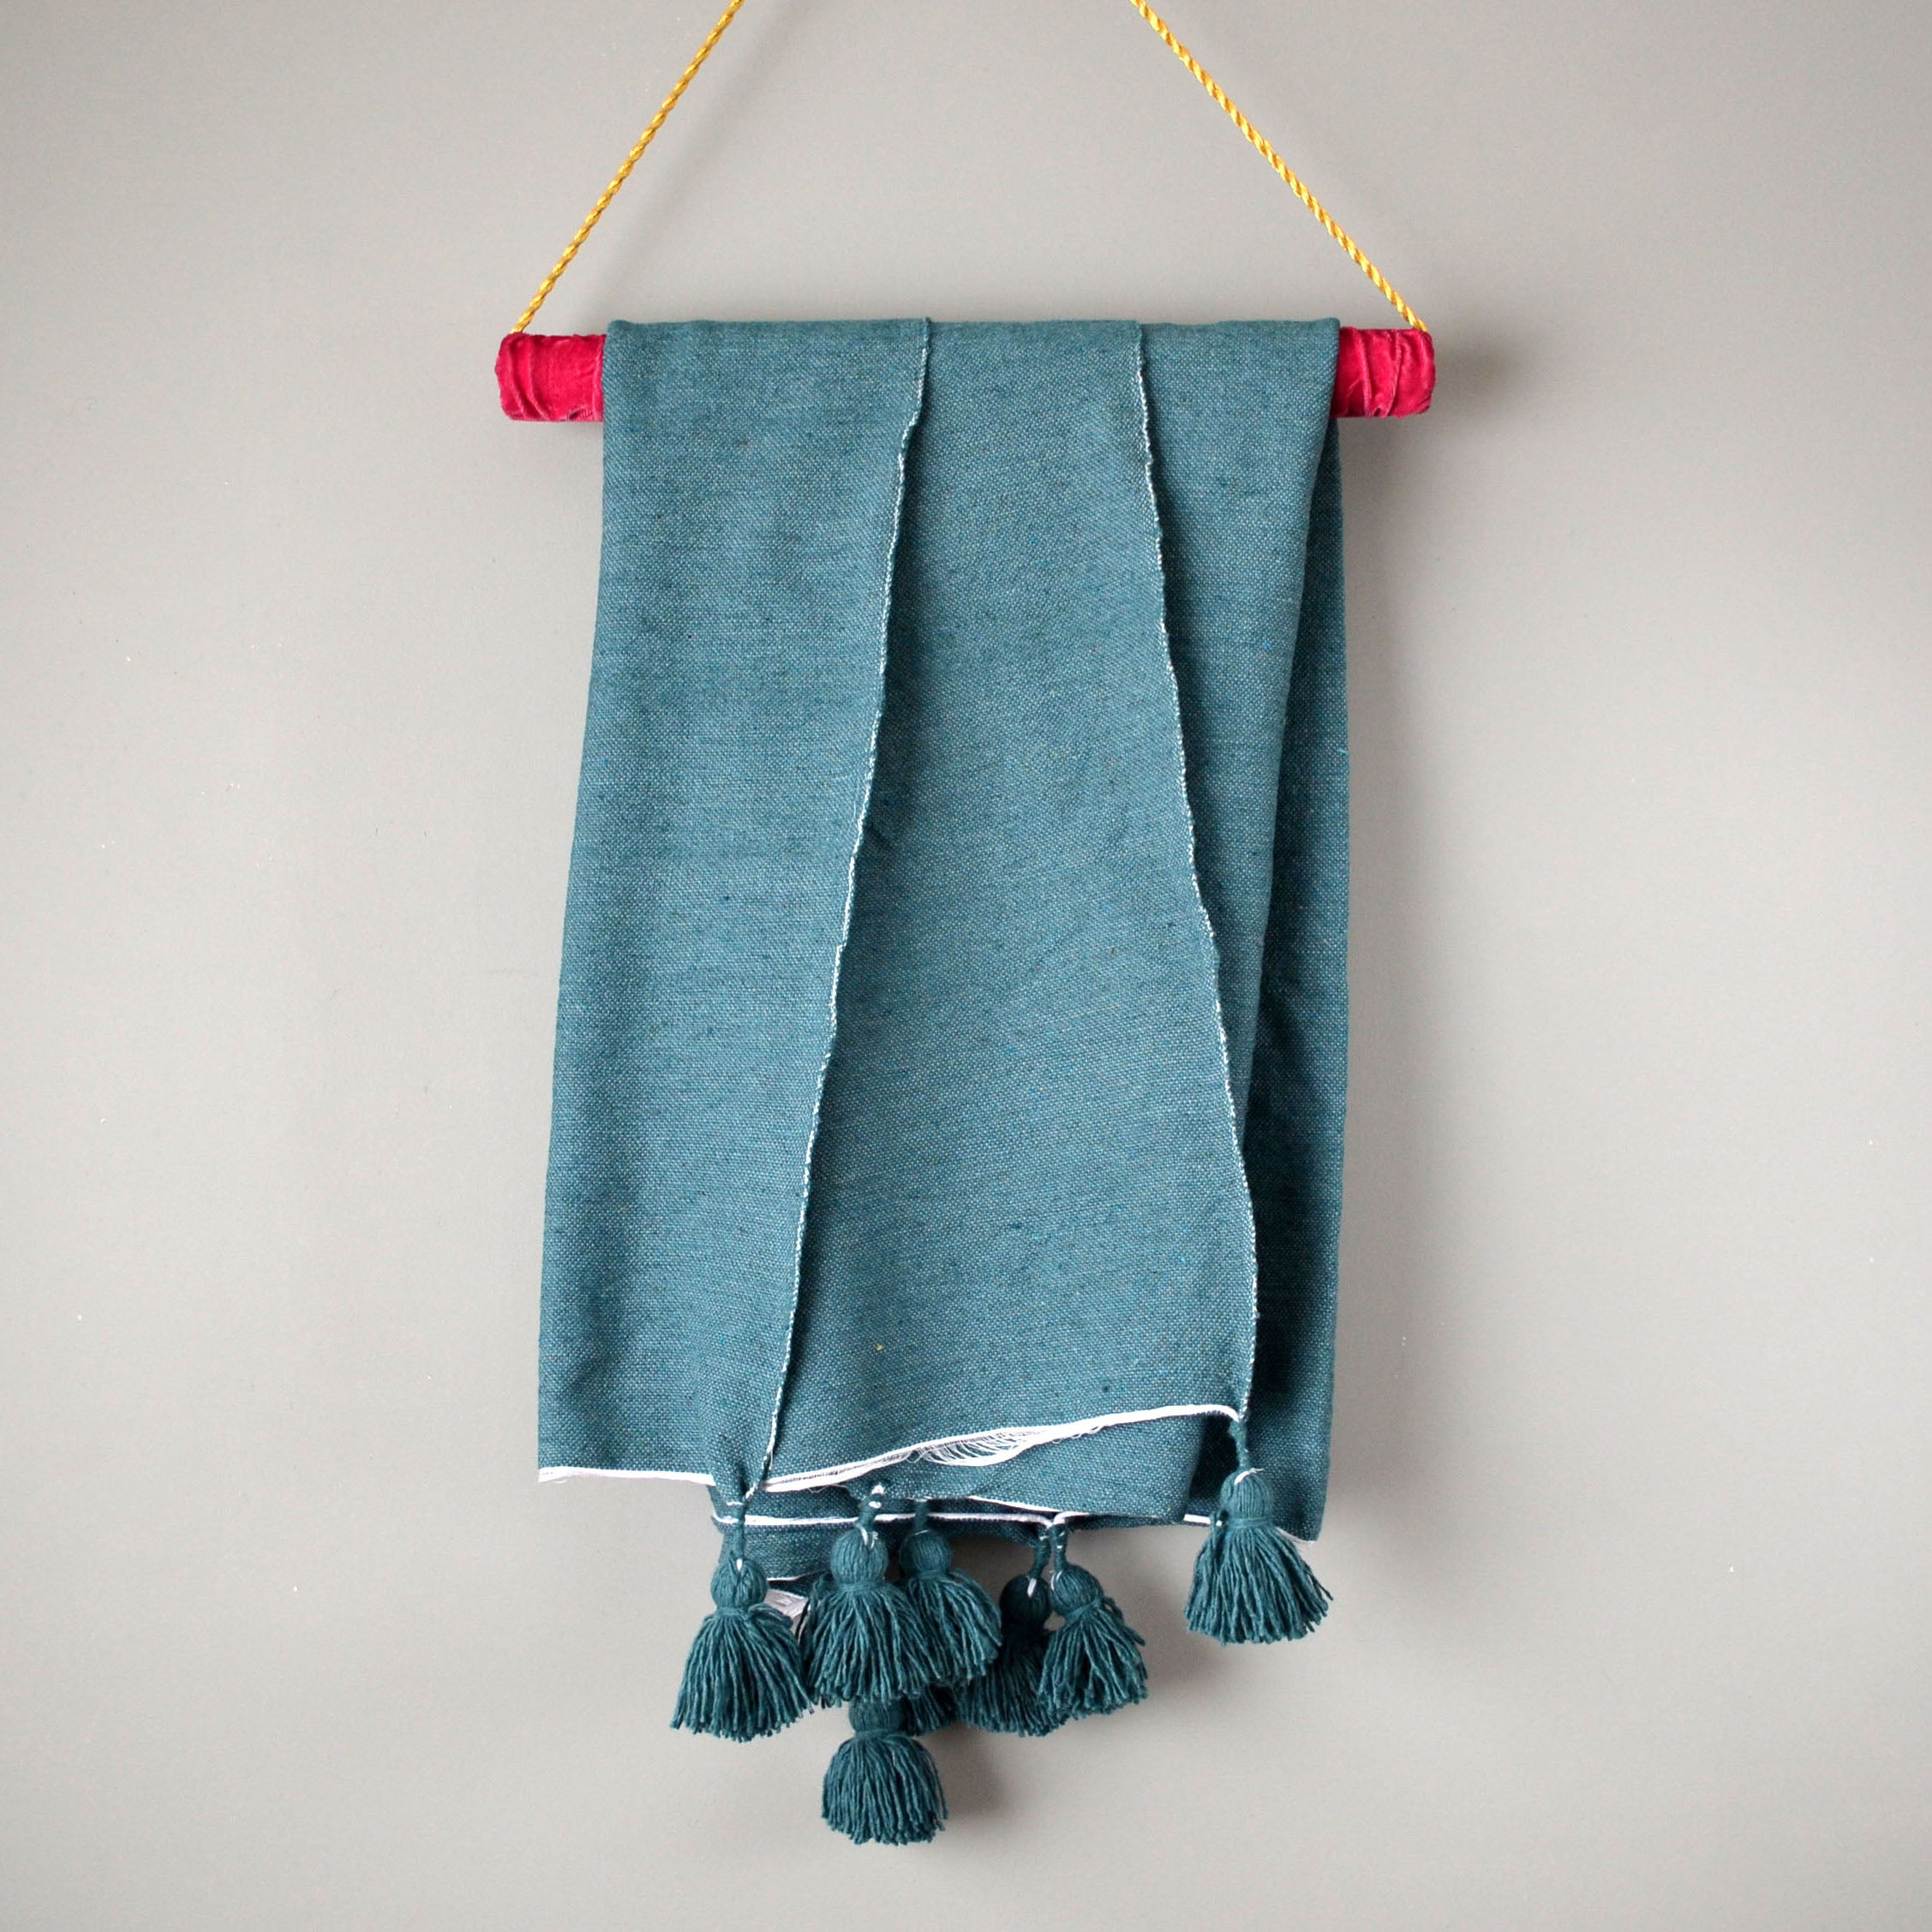 Blue Green Cotton Pom Pom Throw Blanket by Yuba Mercantile